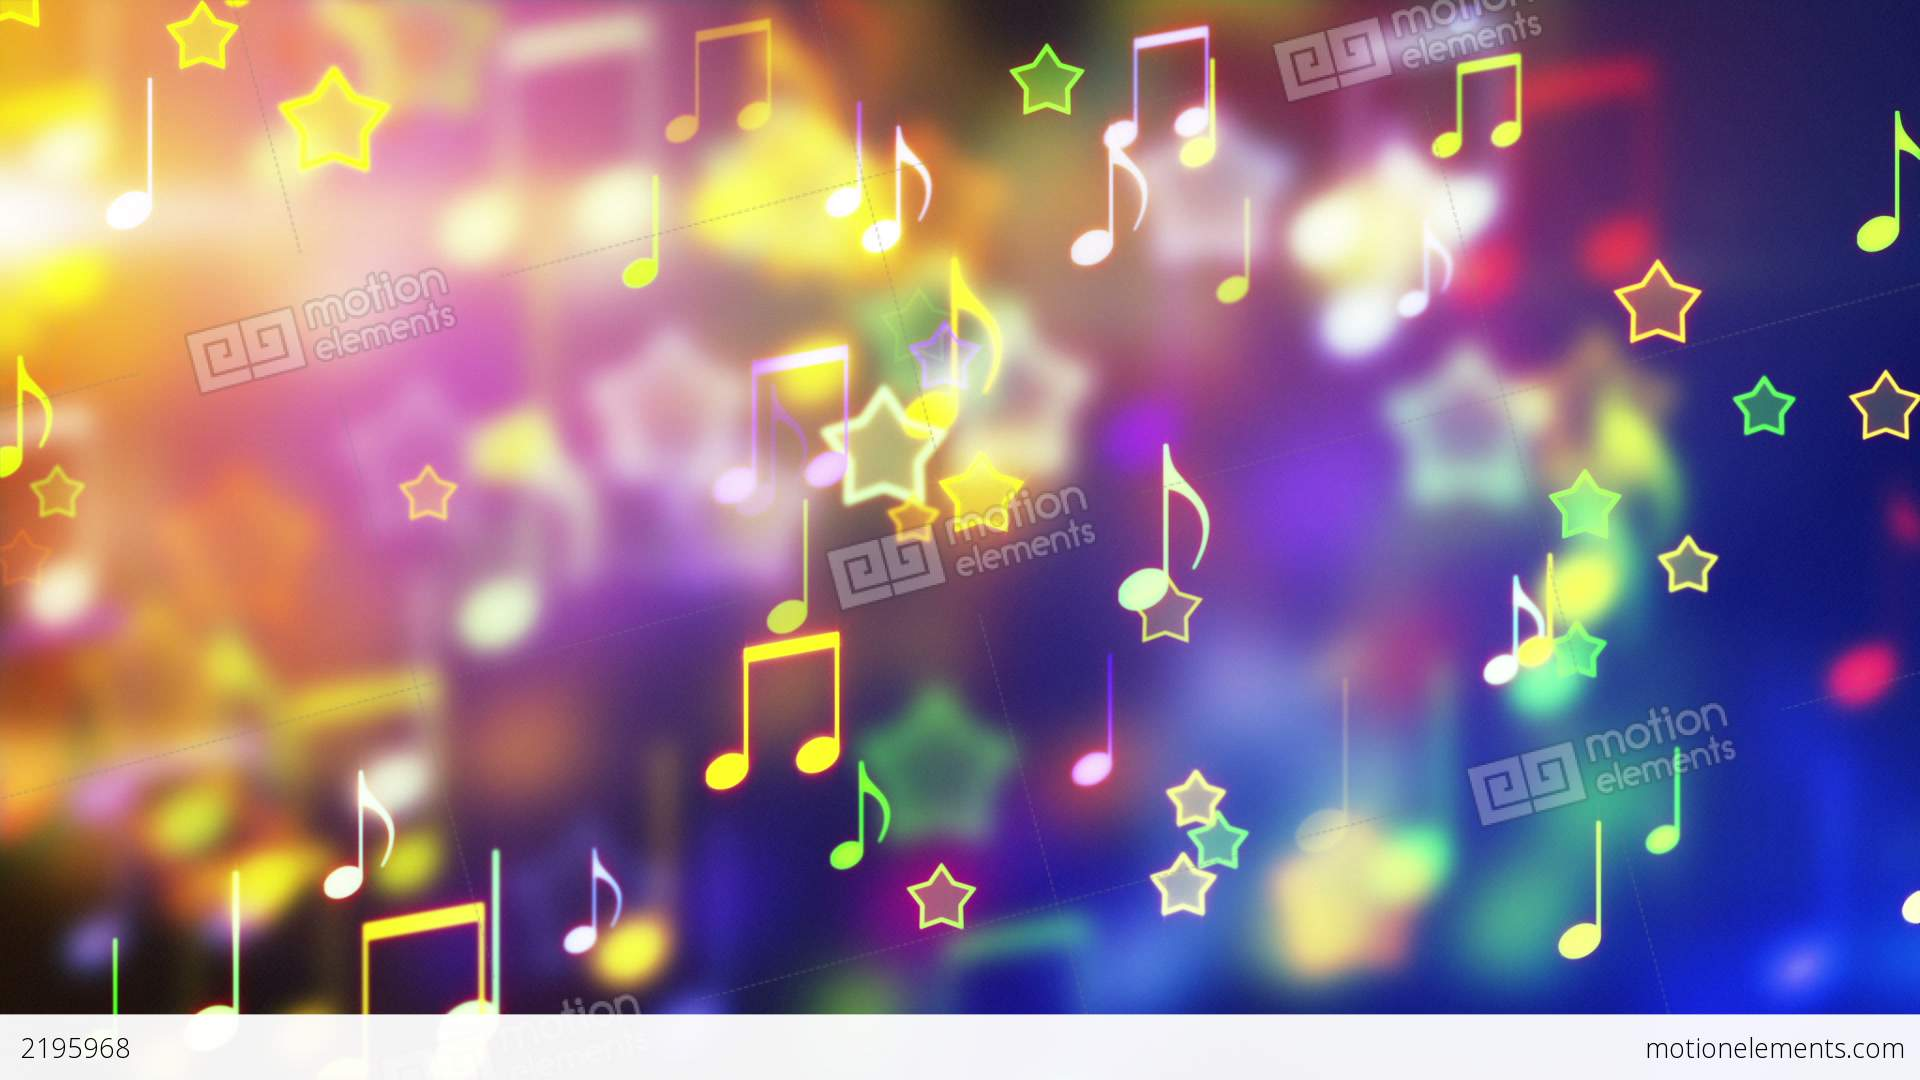 me2195968-shiny-notes-stars-looping-party-background-hd-a0120.jpg